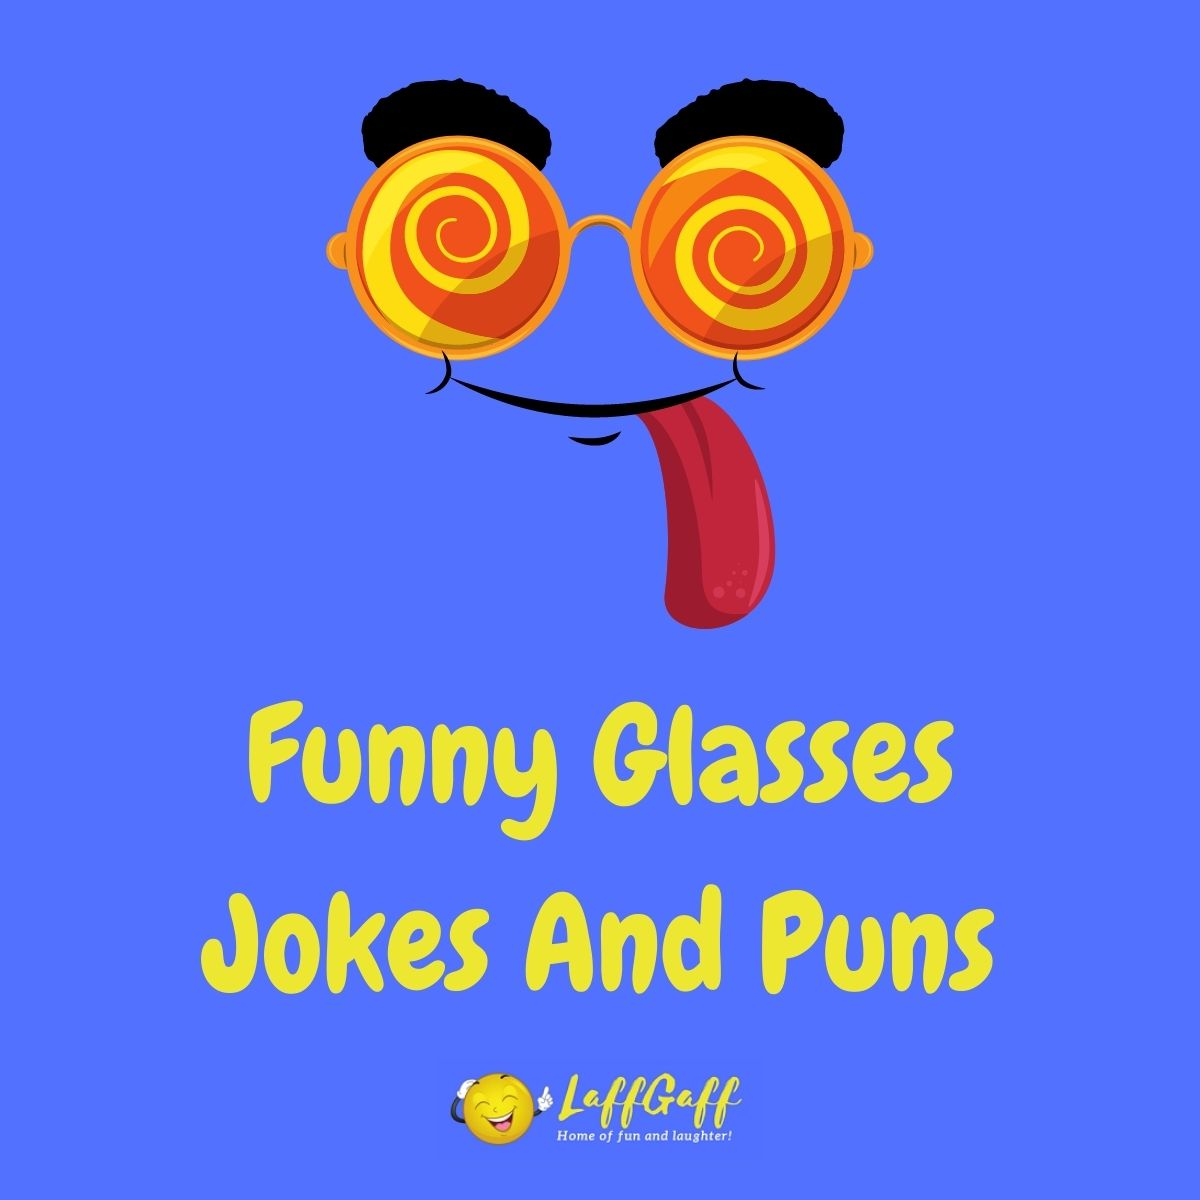 Featured image for a page of funny glasses jokes and puns.